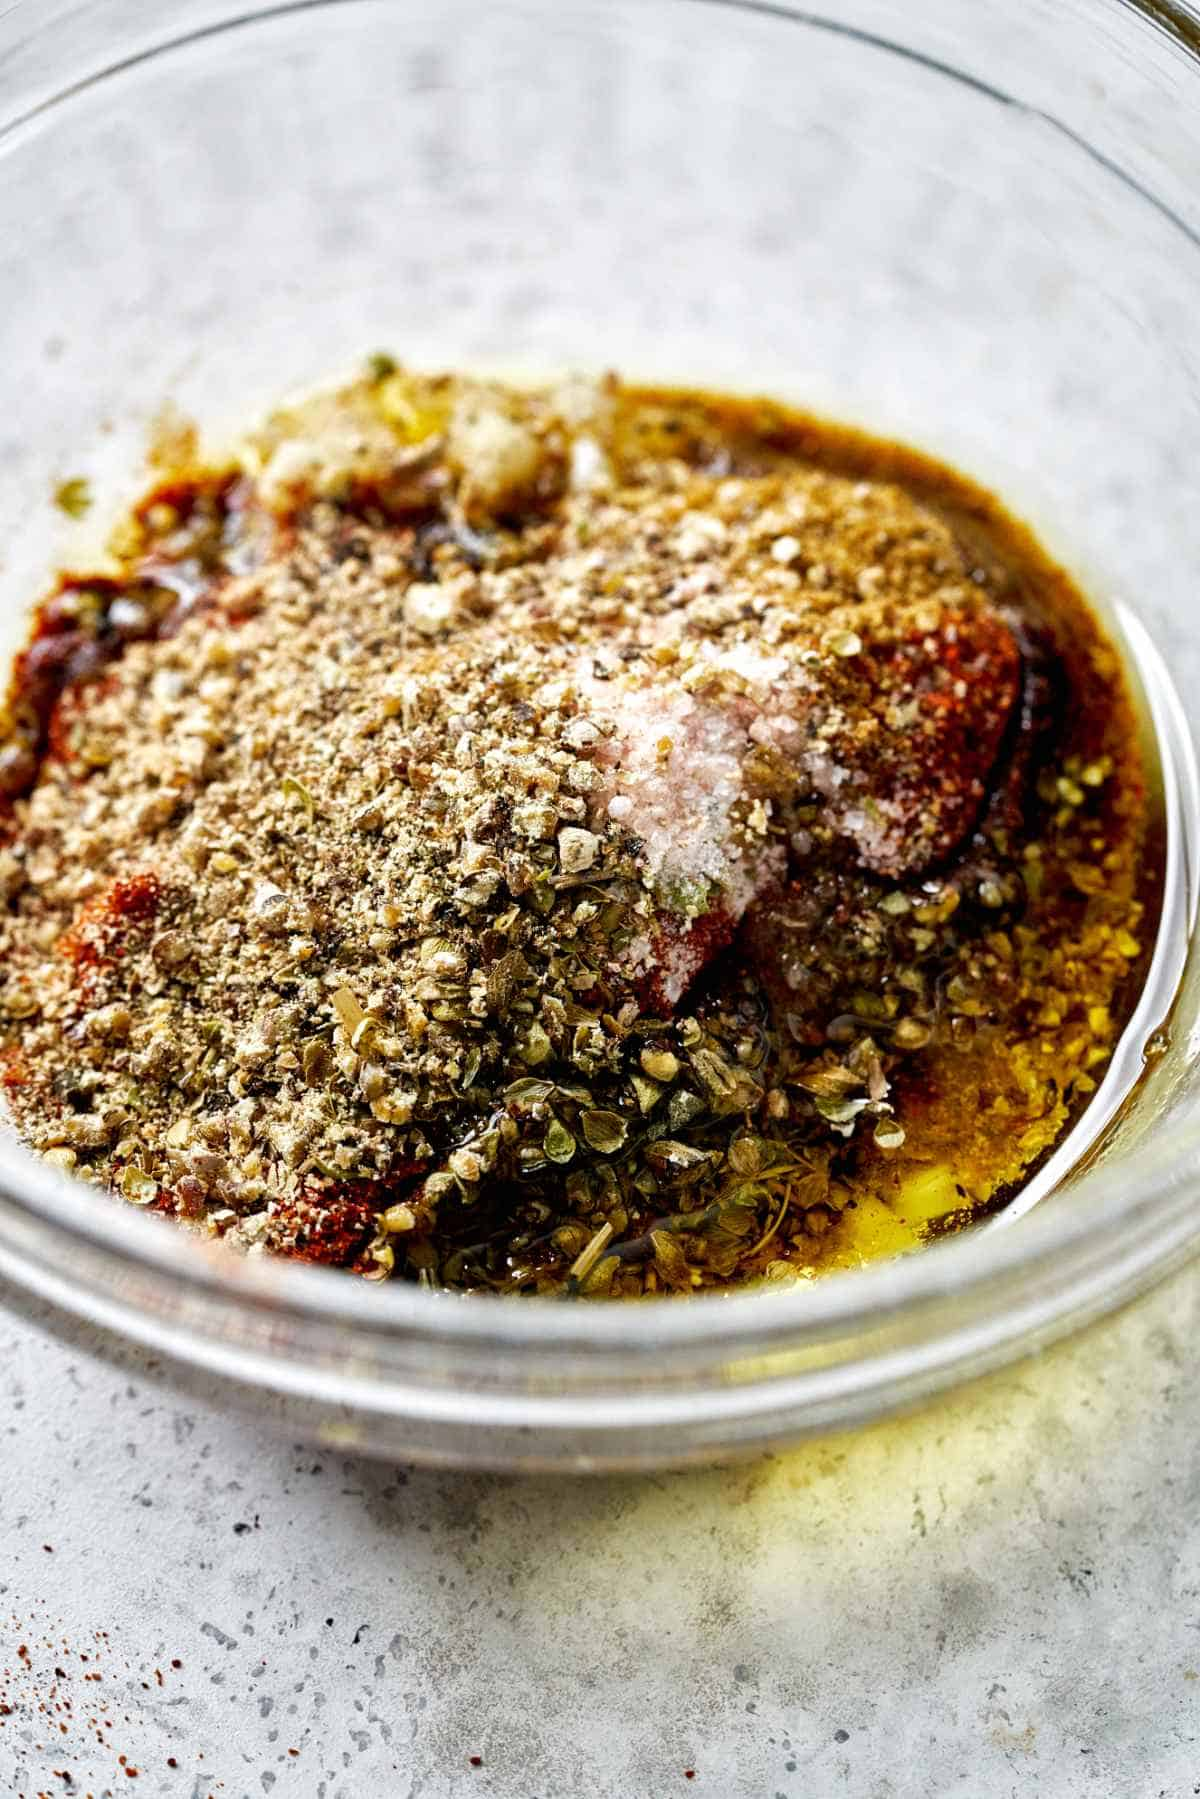 Glass bowl filled with spice mix.